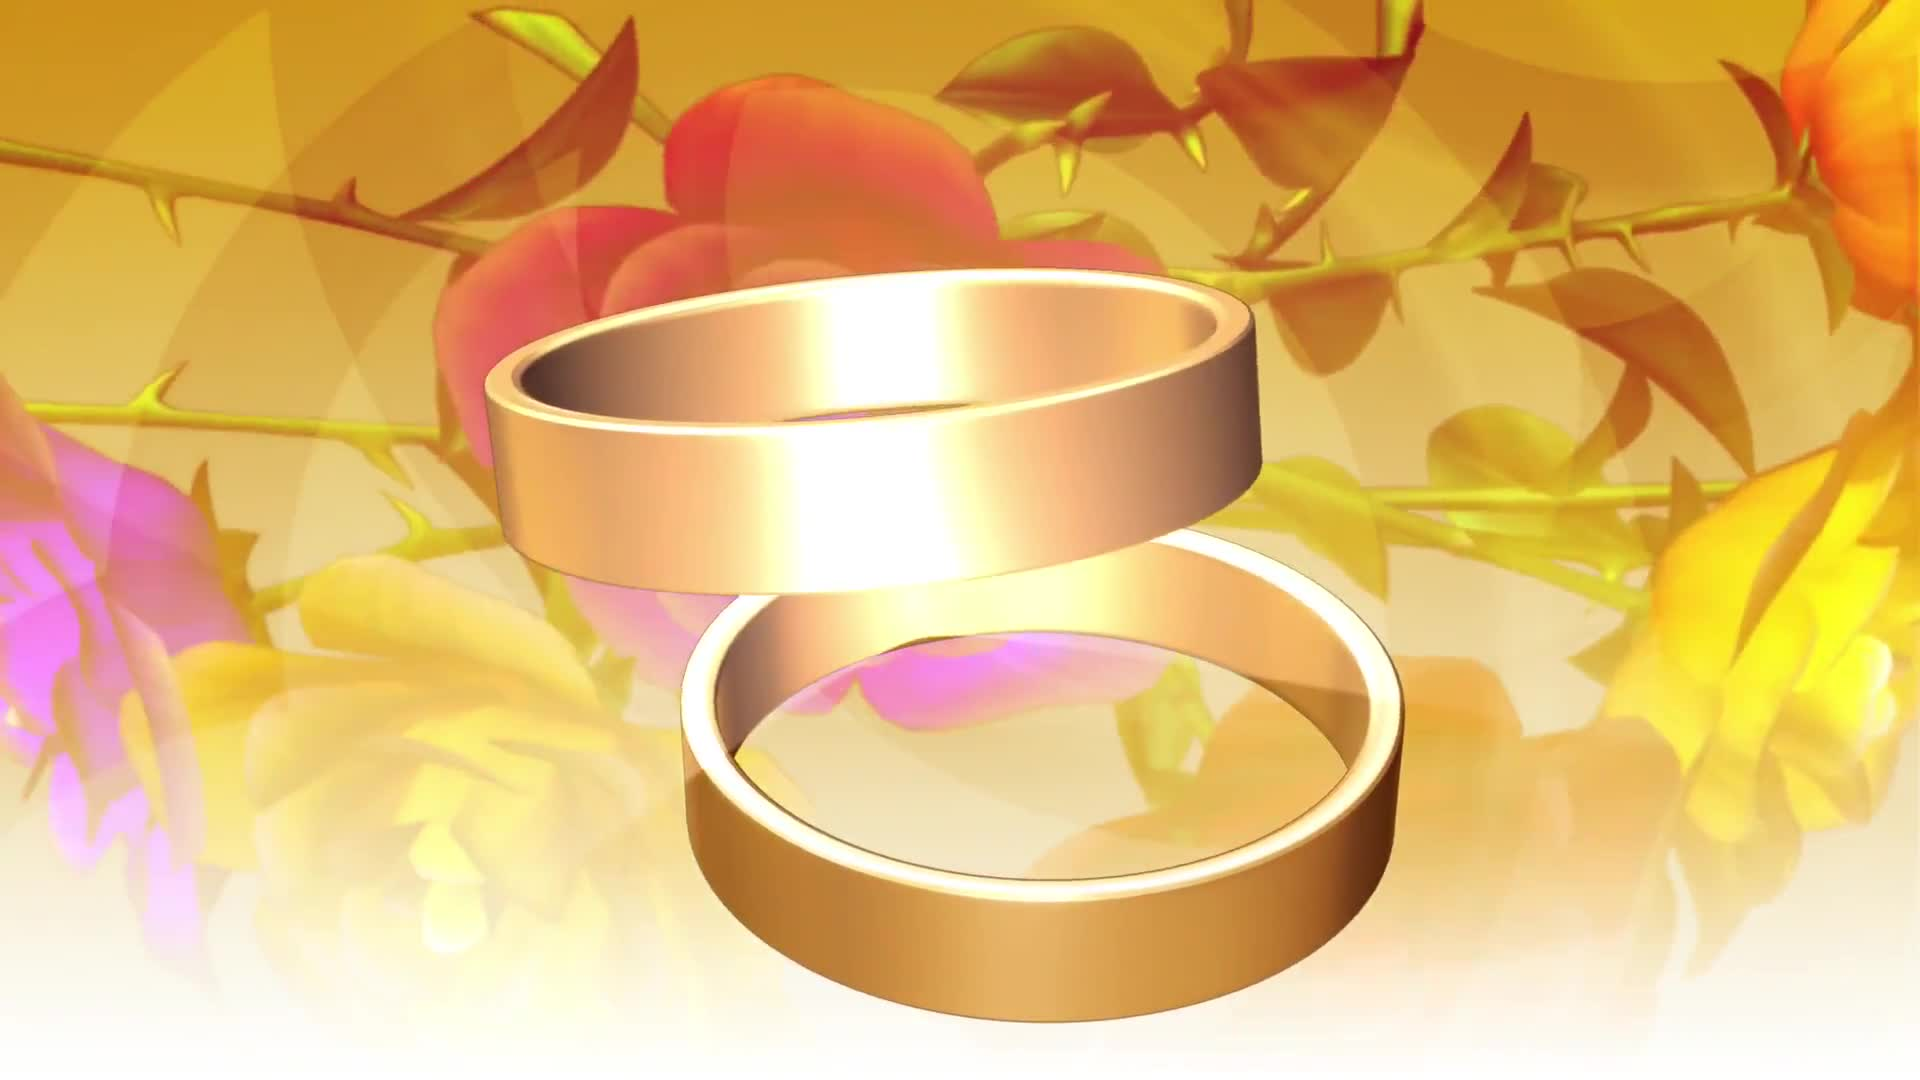 Wedding rings gold romantic love background